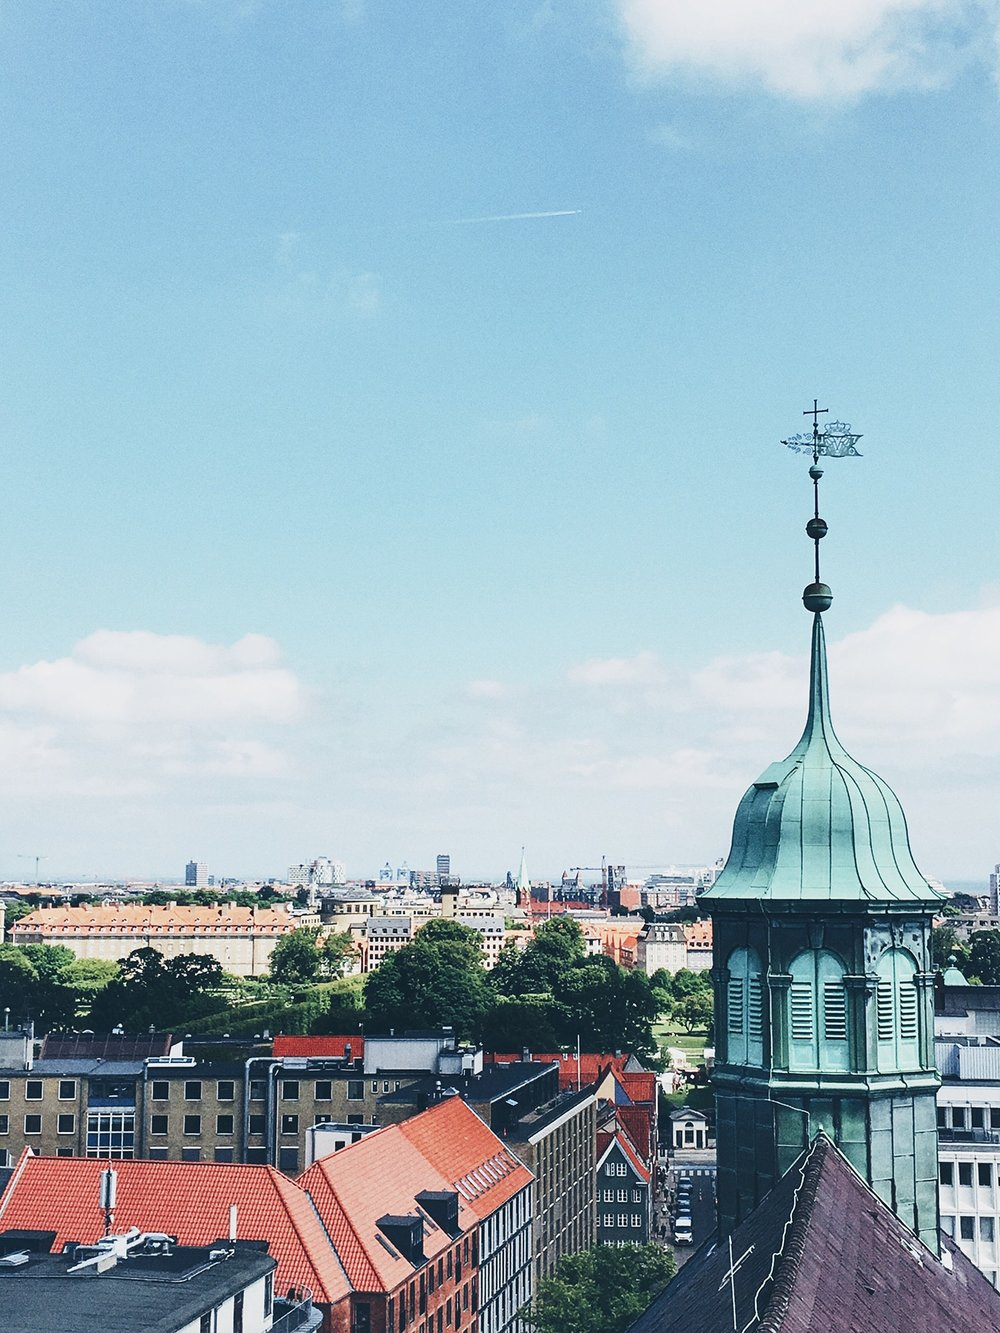 View from the top of the Round Tower (Copenhagen, Denmark)